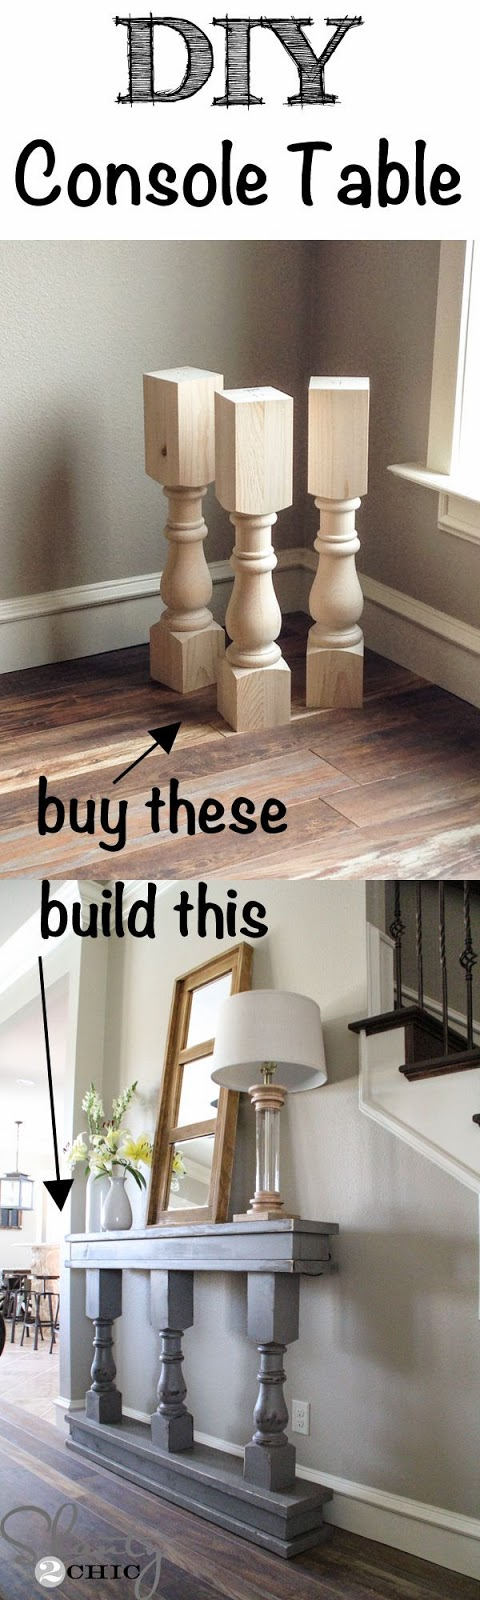 http://www.shanty-2-chic.com/2014/04/diy-console-table.html